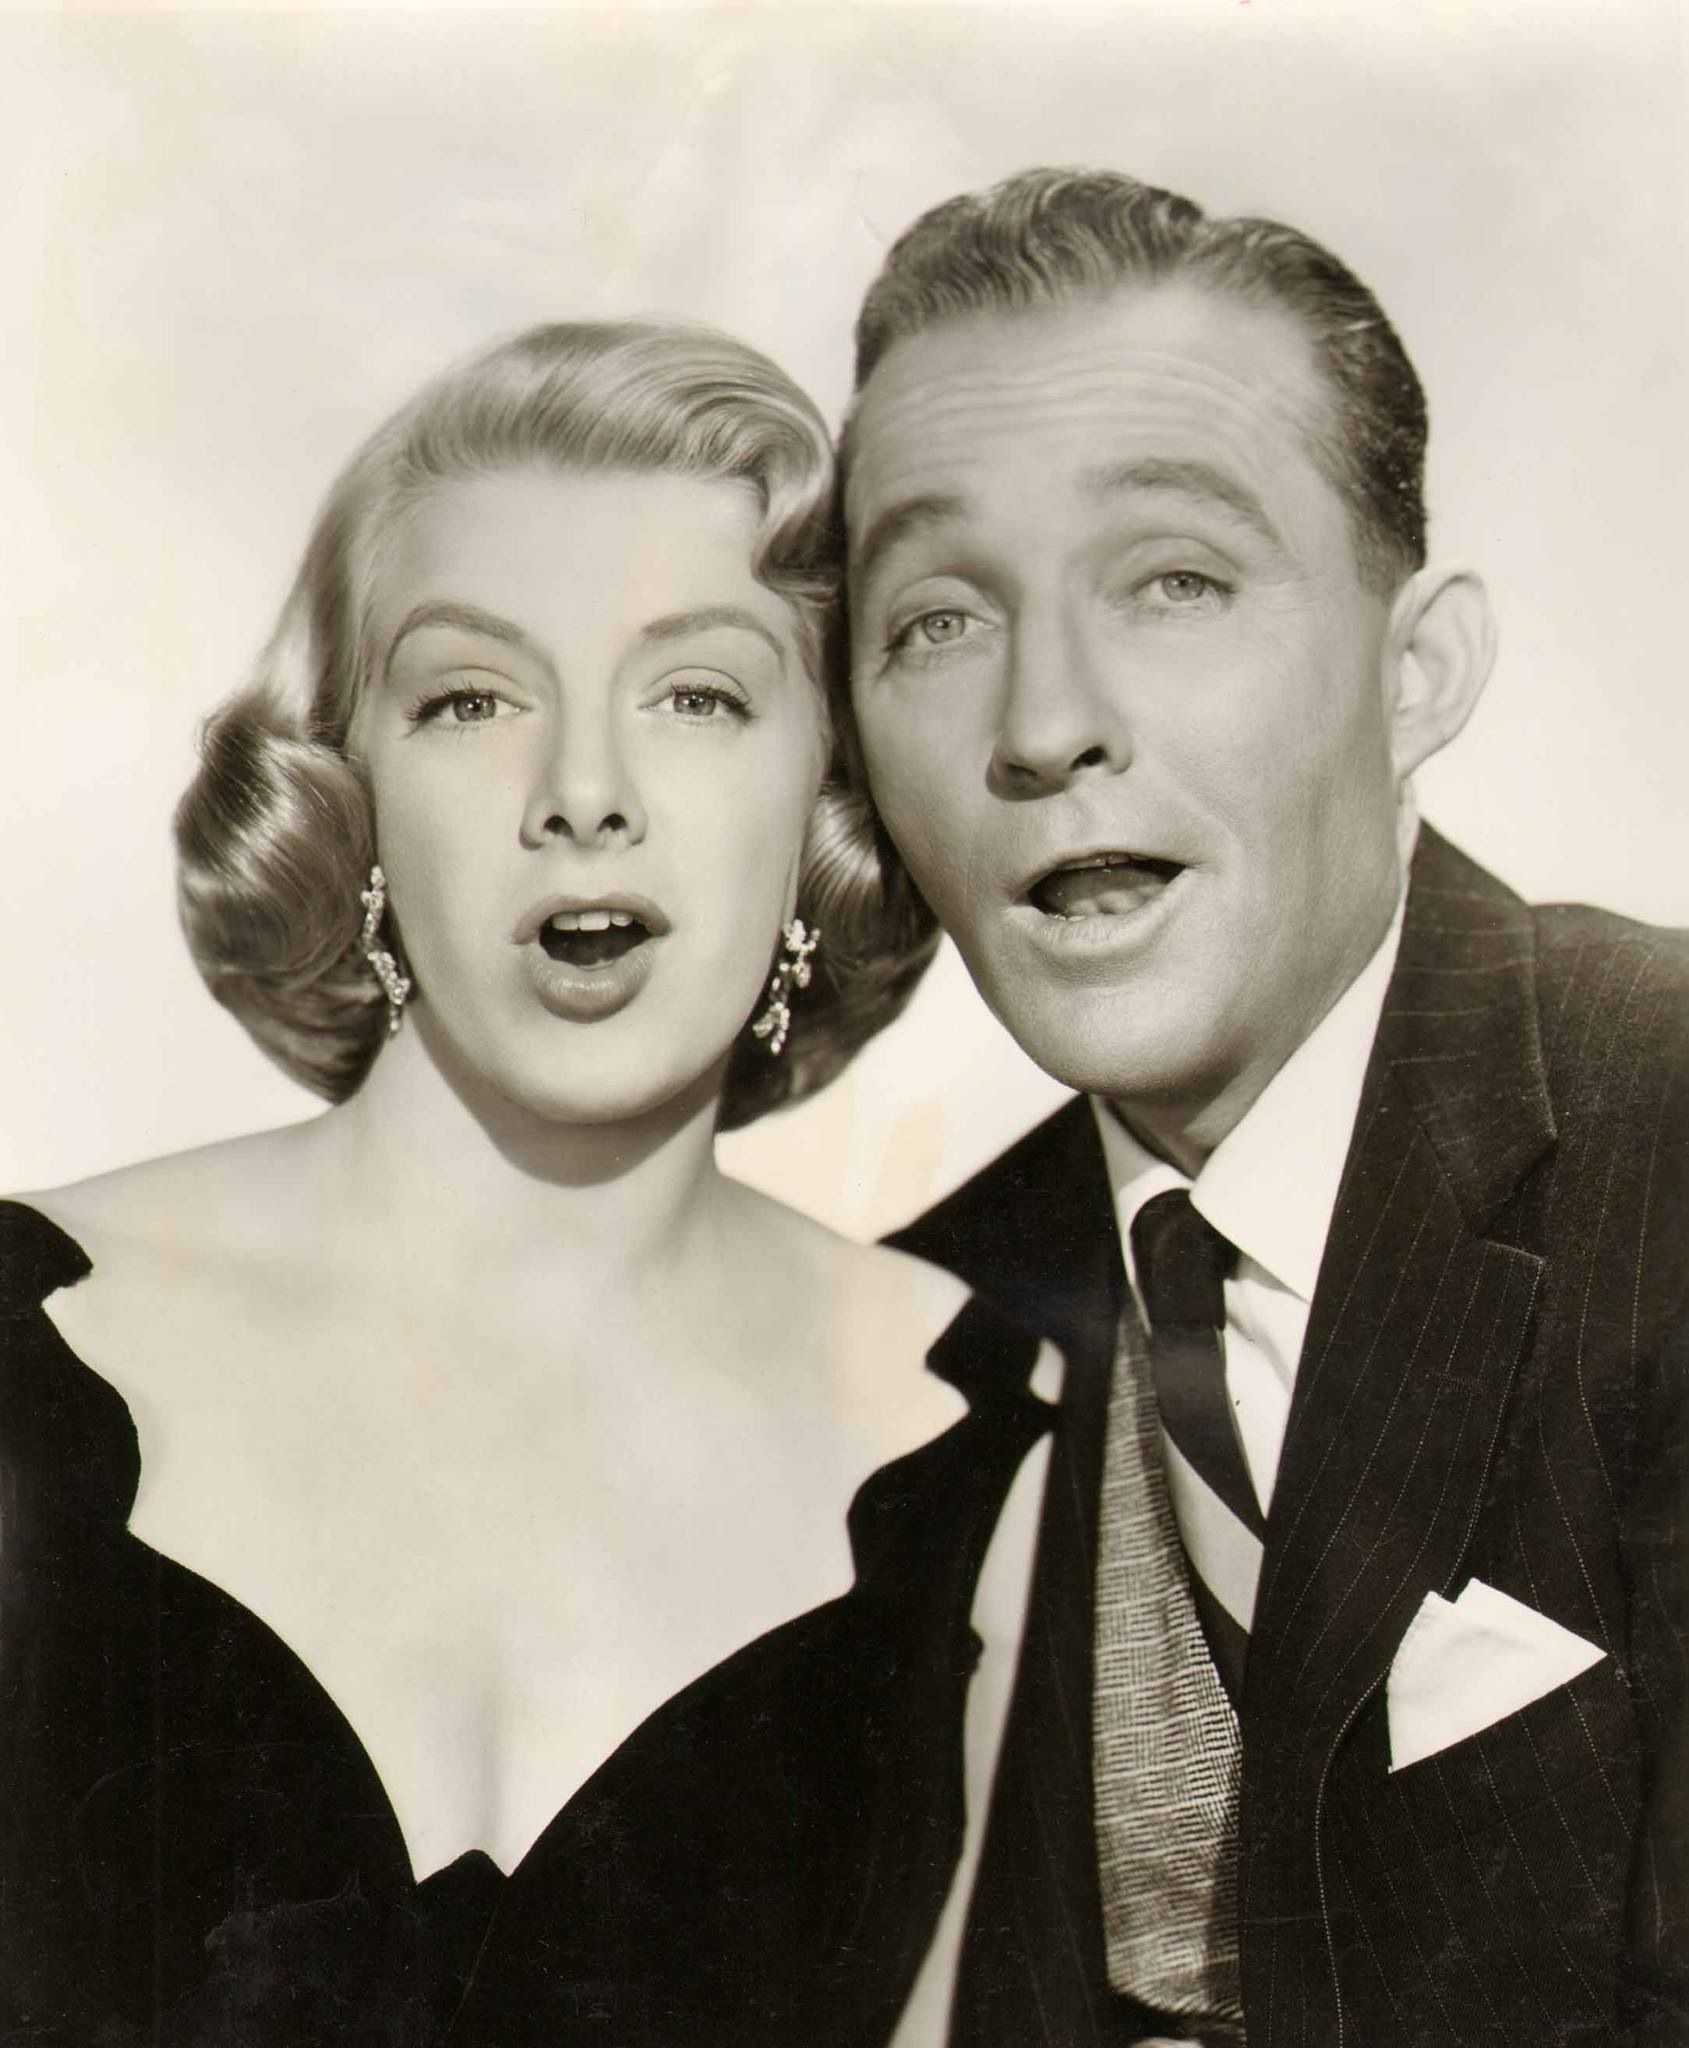 Bing Crosby & Rosemary Clooney White Christmas is one of